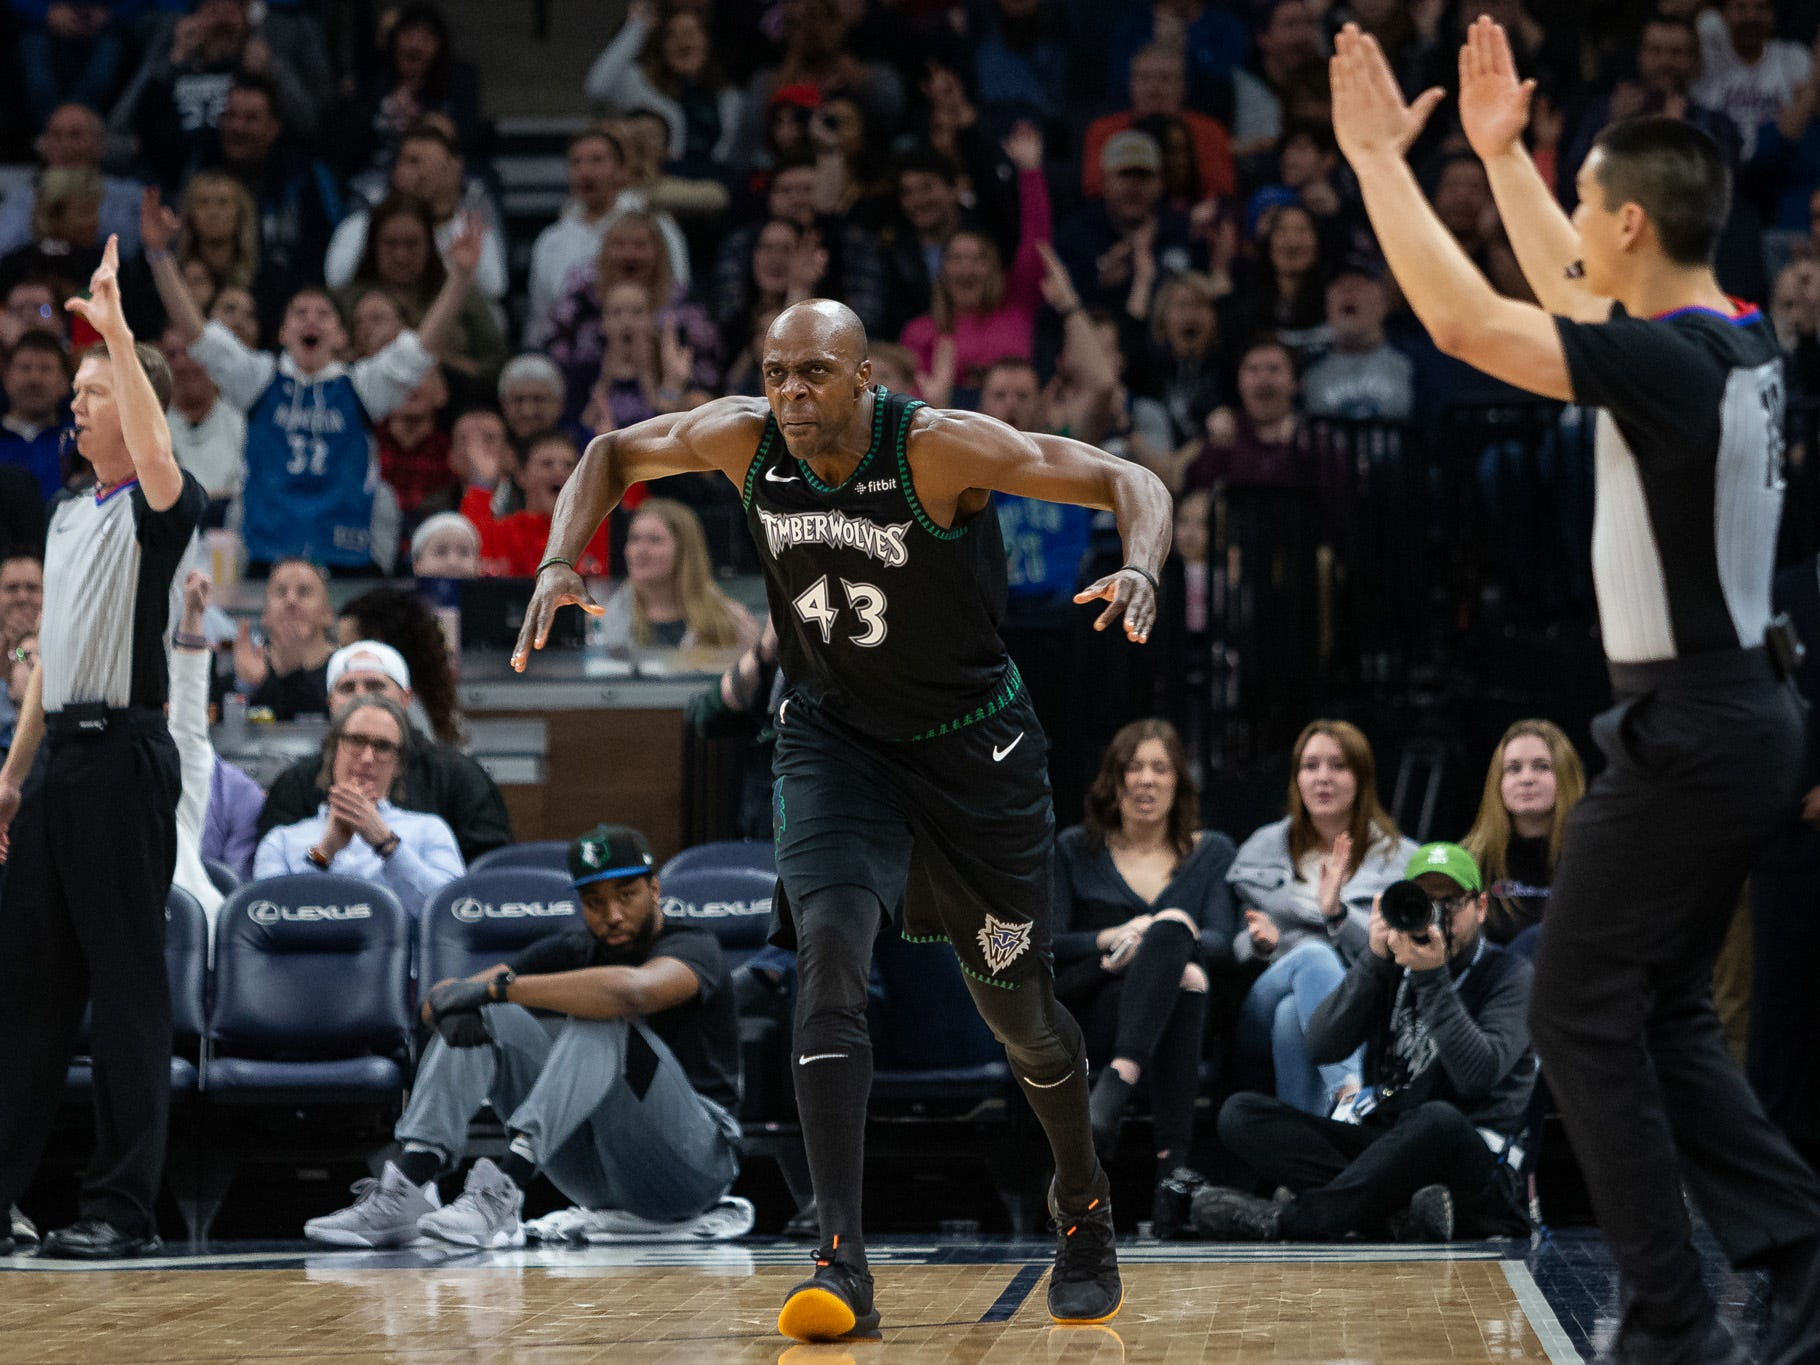 Minnesota Timberwolves forward Anthony Tolliver celebrates a play against the Orlando Magic at Target Center in Minneapolis, Jan. 4, 2019.